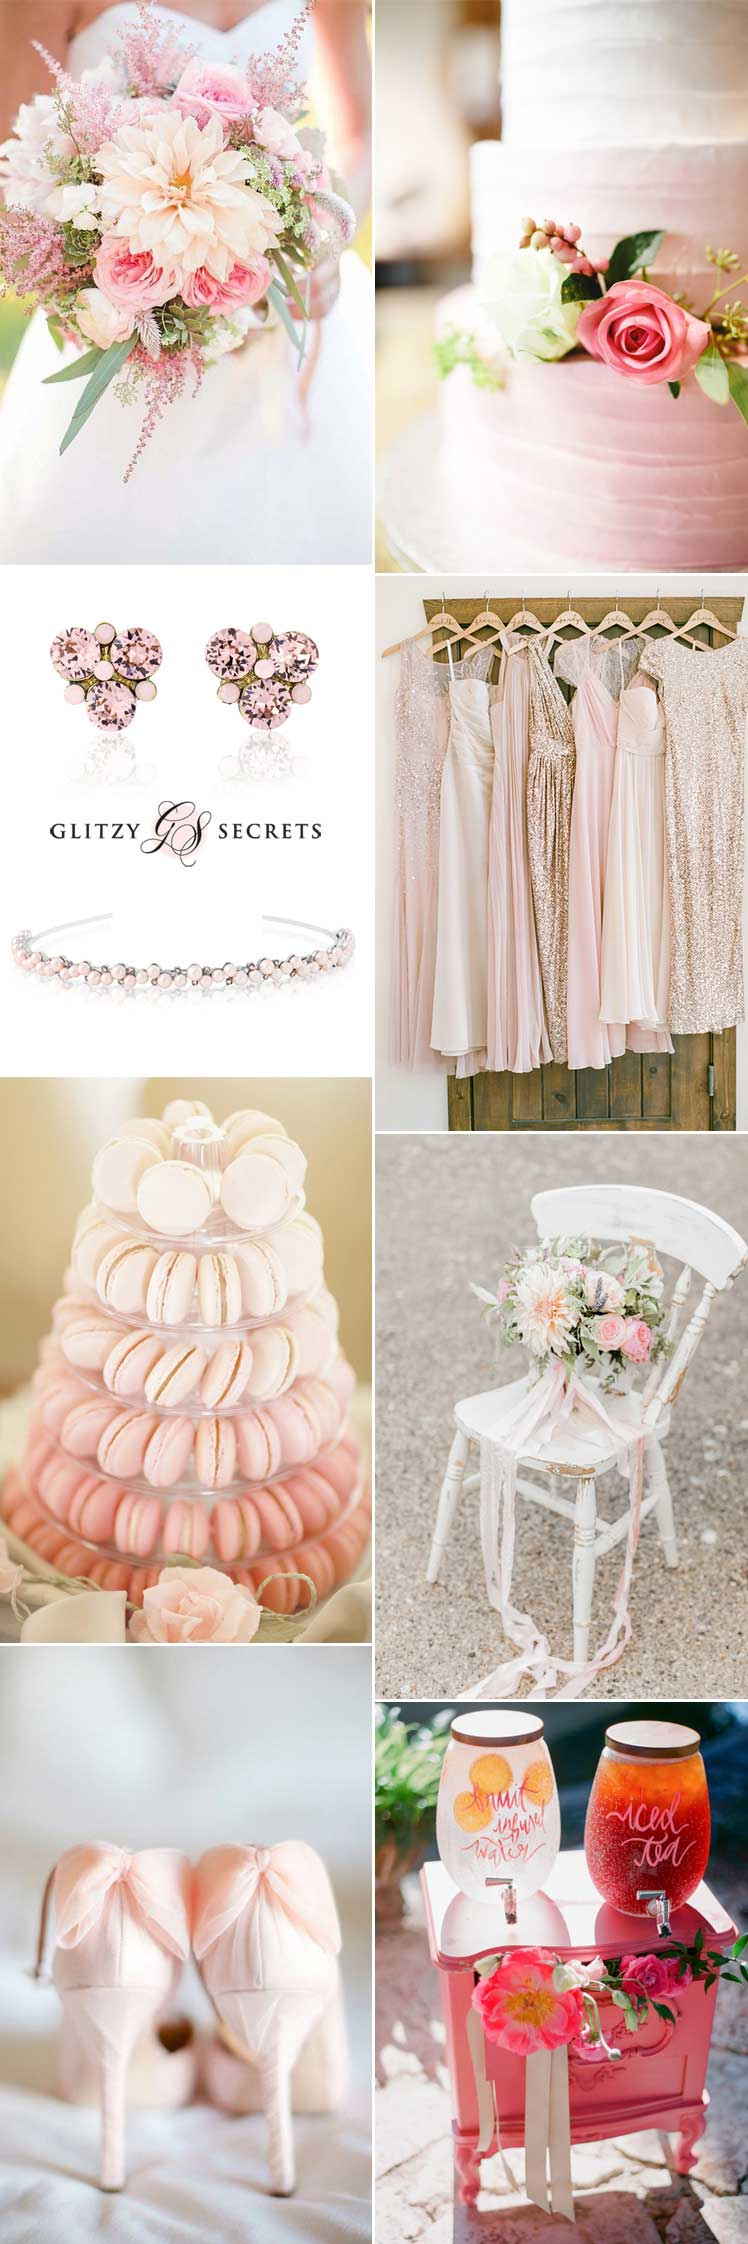 Perfect romantic pink wedding ideas inspiration